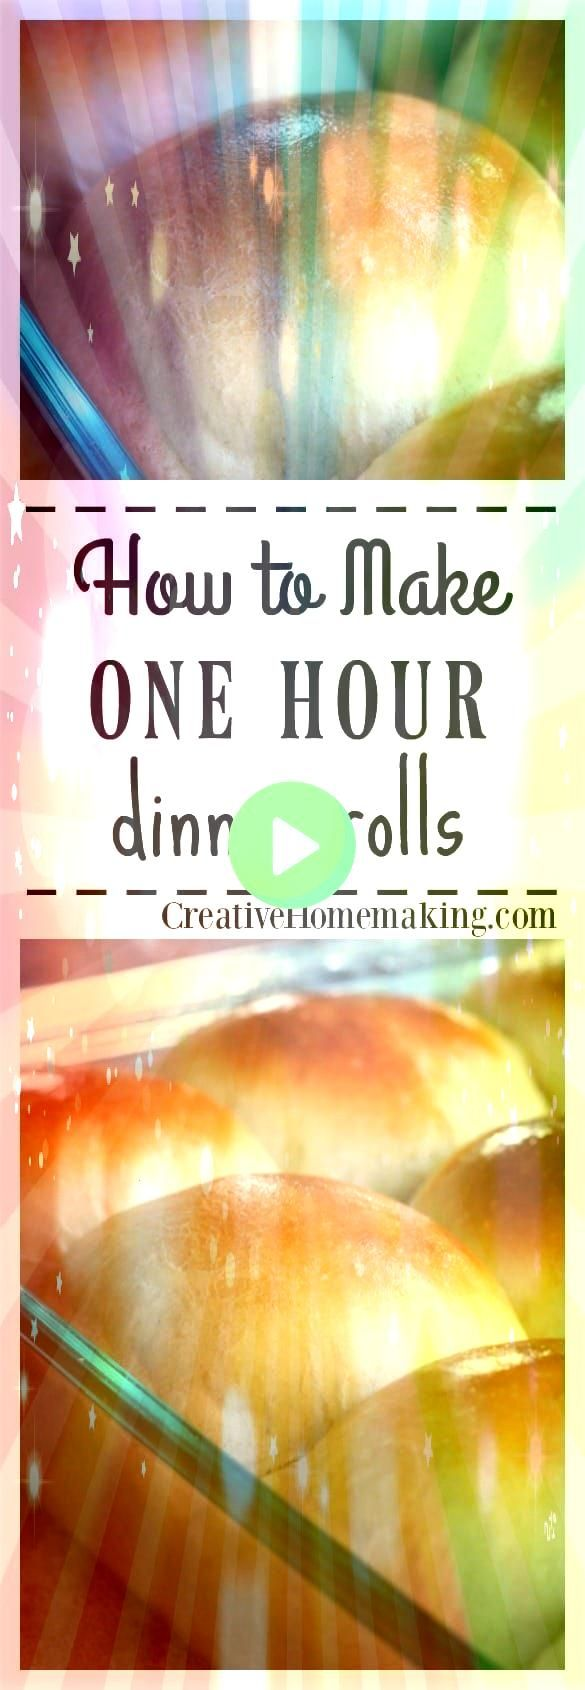 Hour Dinner Rolls One Hour Dinner Rolls One Hour Dinner Rolls 3 Amazing Recipes Using Homemade Bread Dough posted just for the sticky buns Perfectly soft homemade dinner...